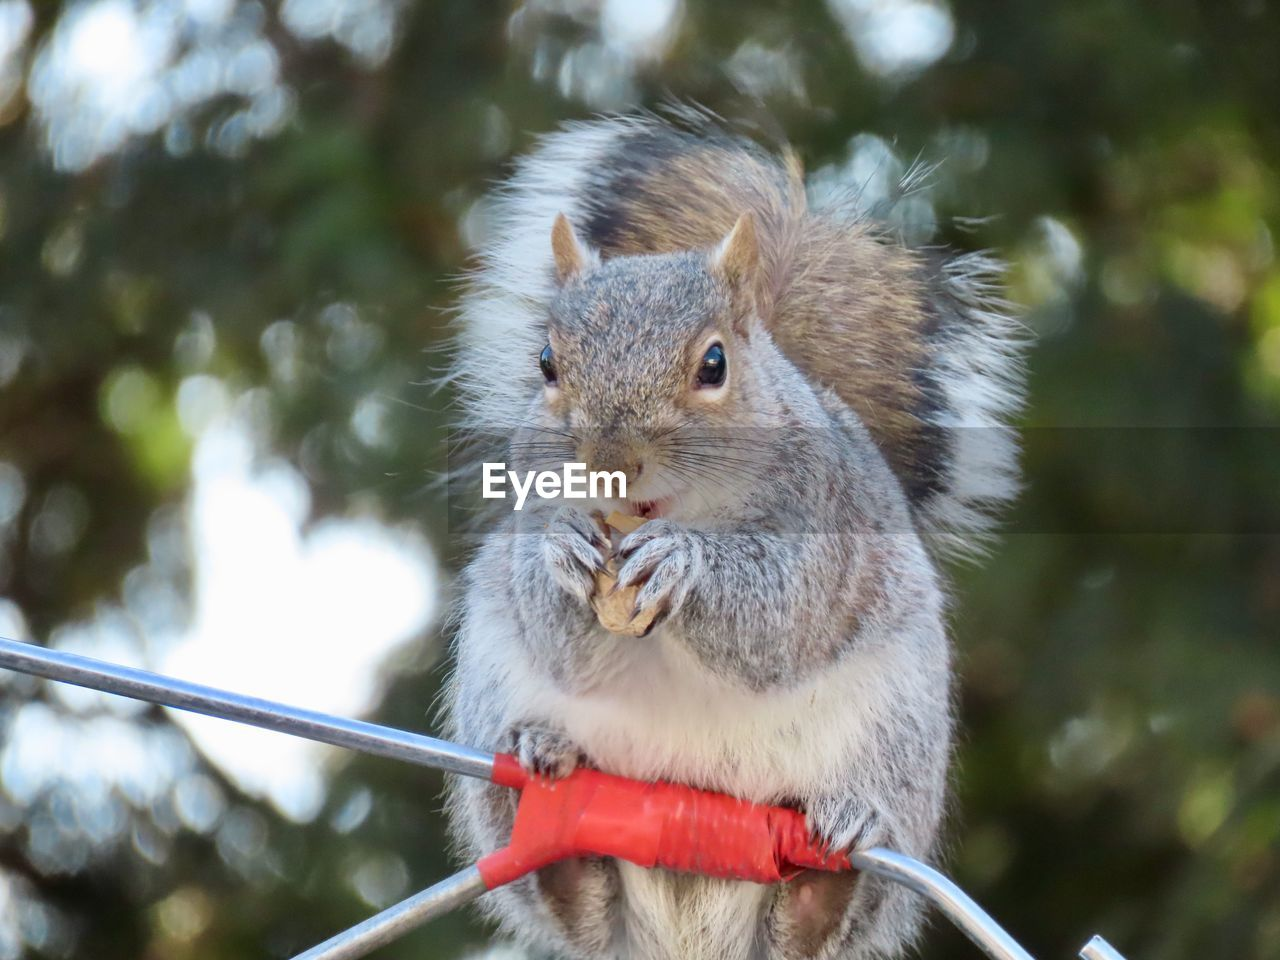 animal themes, animal wildlife, animal, one animal, mammal, rodent, animals in the wild, focus on foreground, squirrel, day, close-up, no people, vertebrate, eating, nature, outdoors, holding, food, tree, whisker